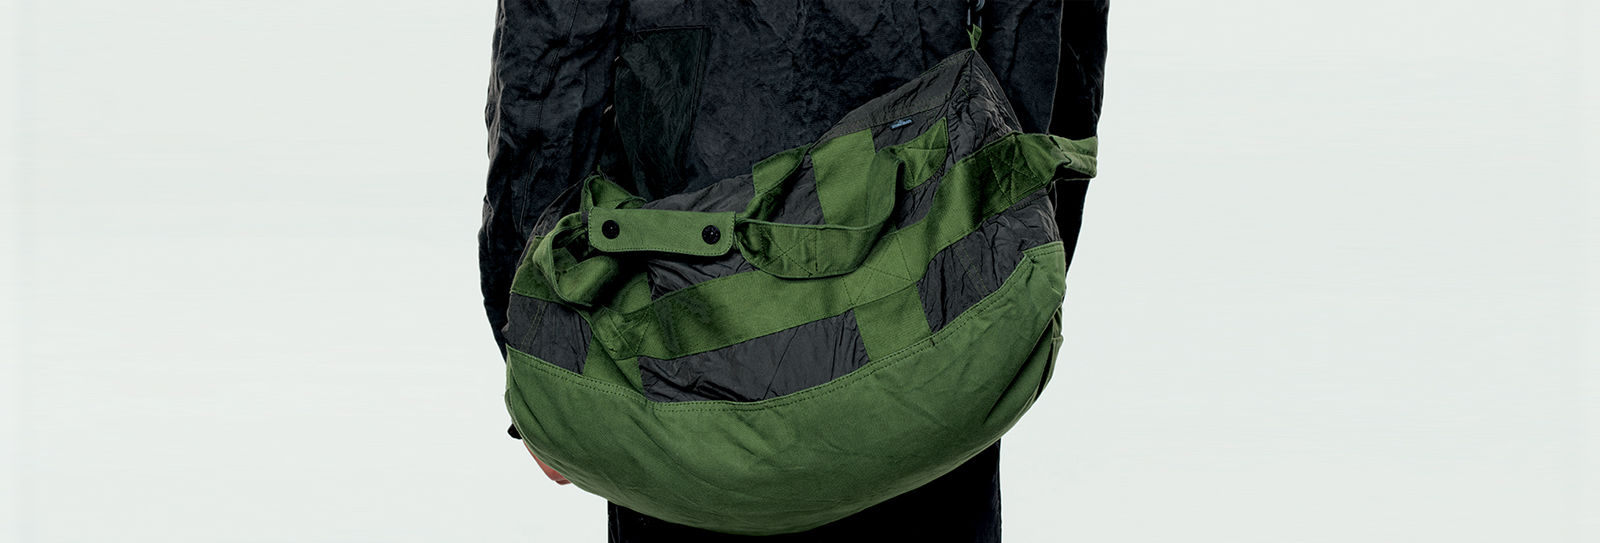 Model carrying a dark green and black duffel bag with carry handles and shoulder strap.